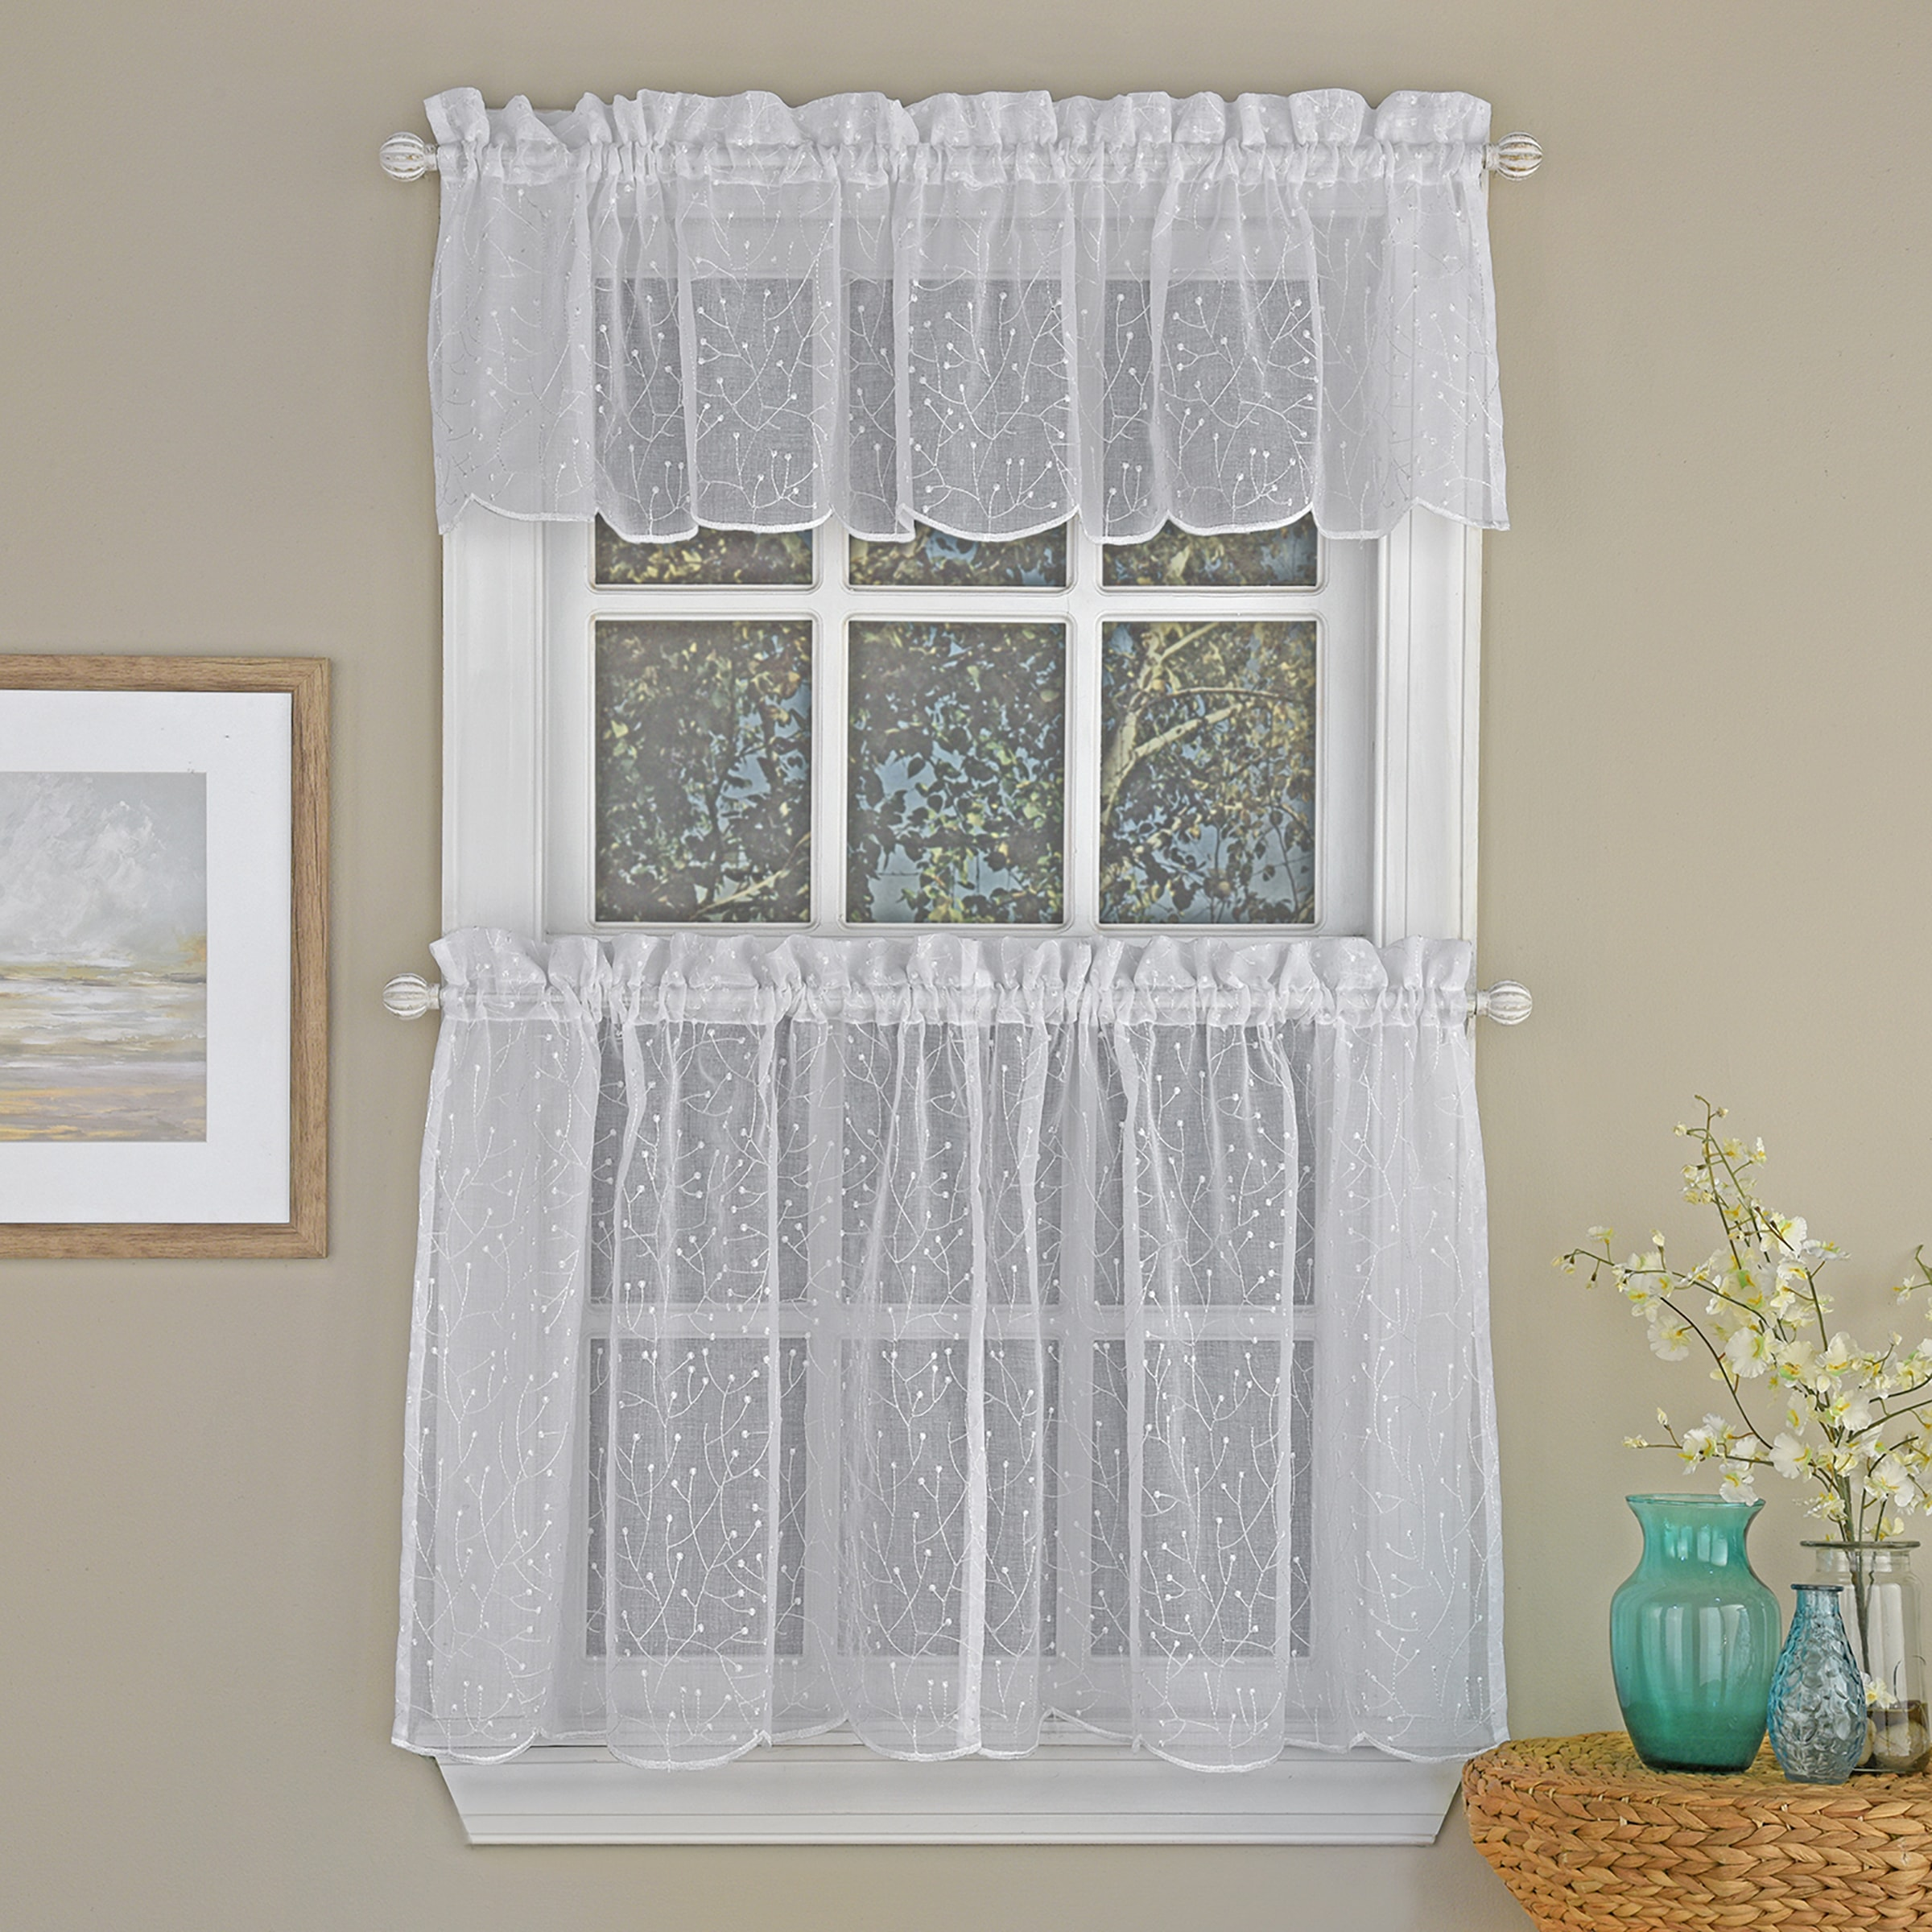 Floral Spray Tier with Valance